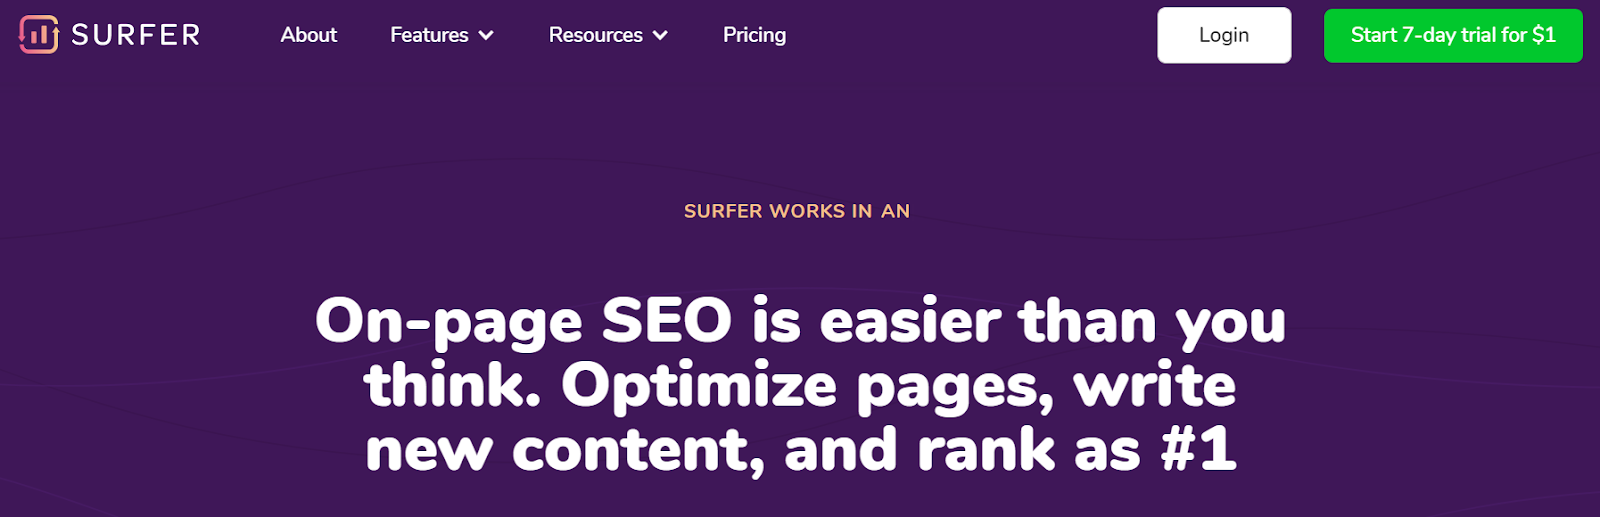 Surfer content optimization tool